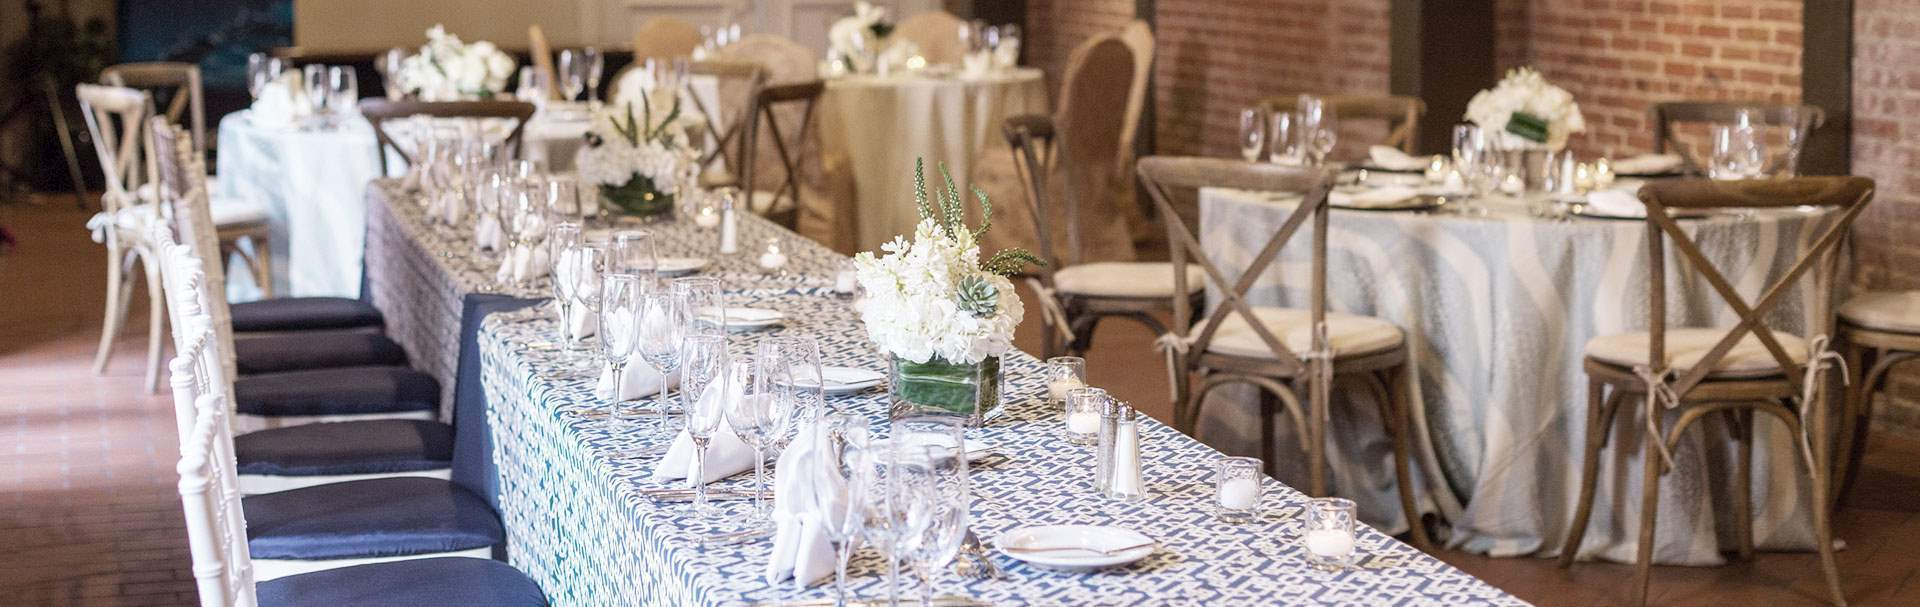 Wedding Package in Inn at Henderson's Wharf Baltimore, Maryland